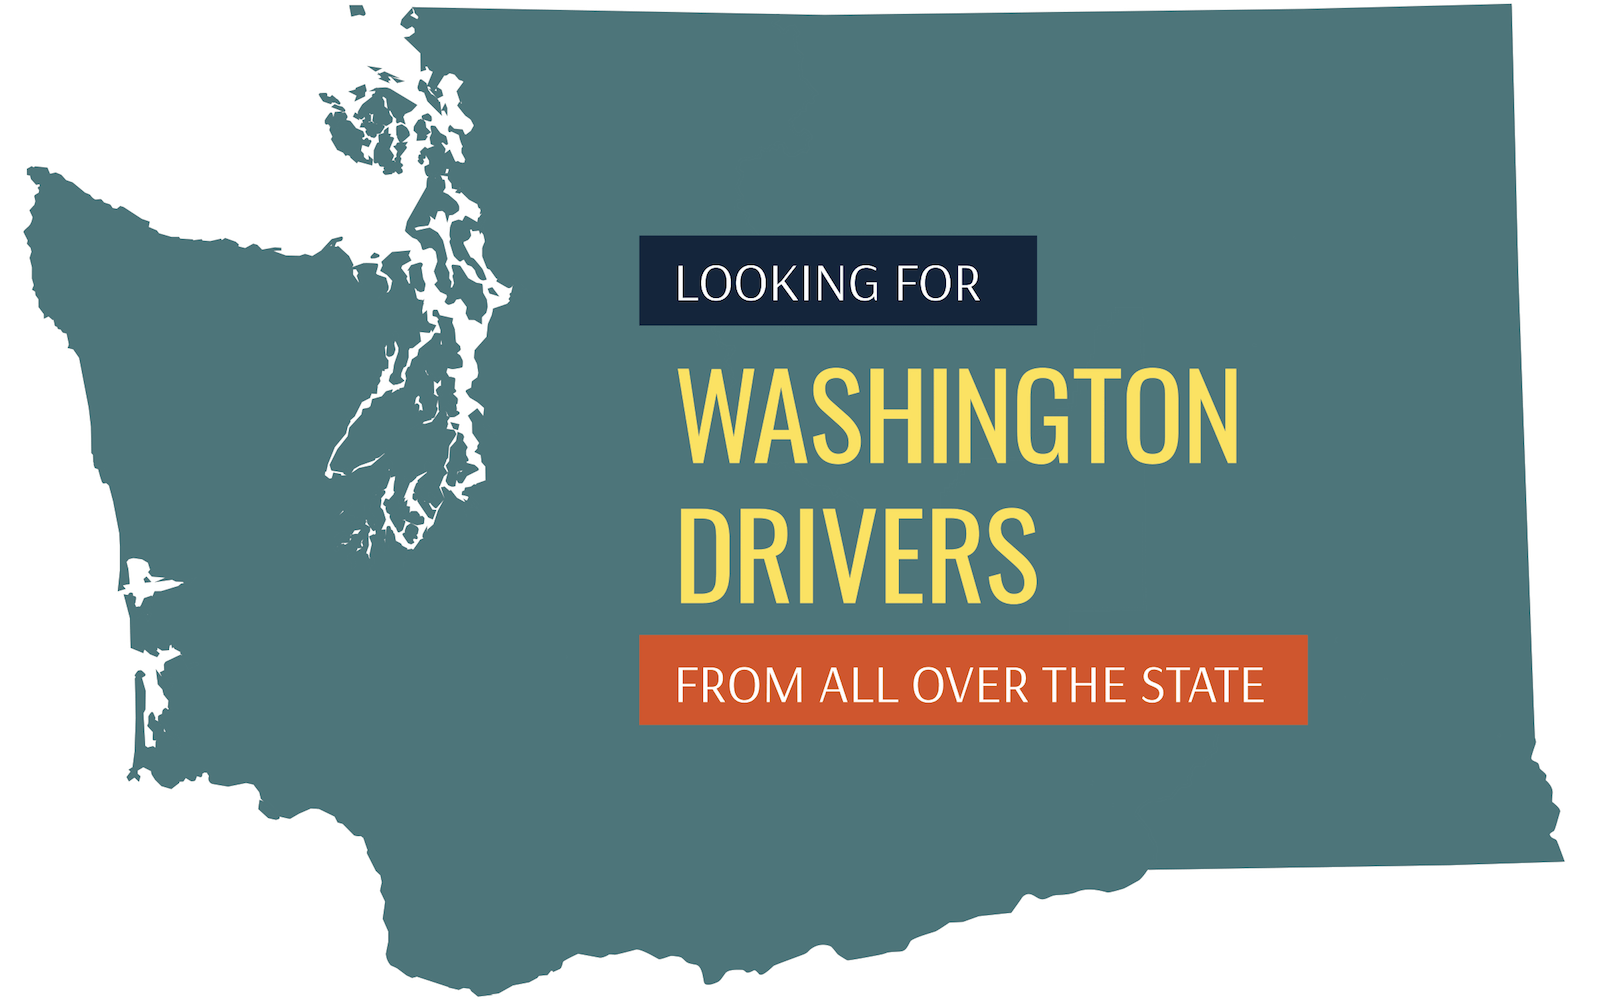 Looking for Washington Drivers from all over the state